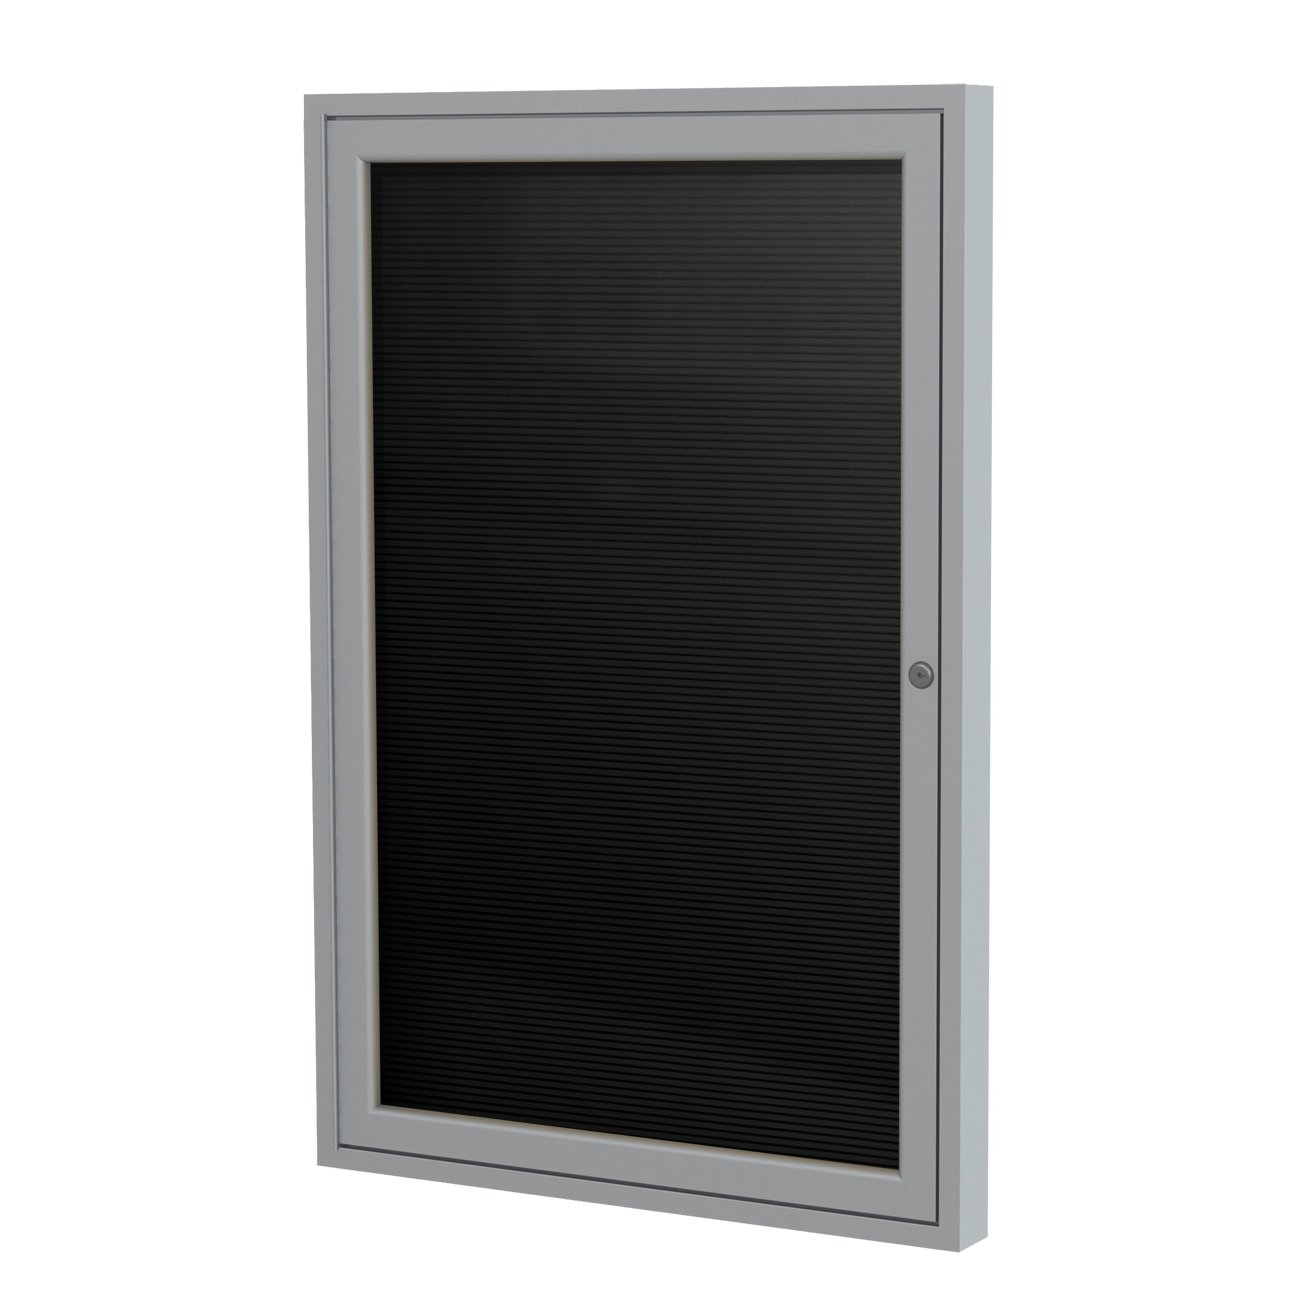 Ghent 36''x30'' 1-Door Satin Aluminum Frame Enclosed Flannel Letterboard - Black - Made in the USA by Ghent